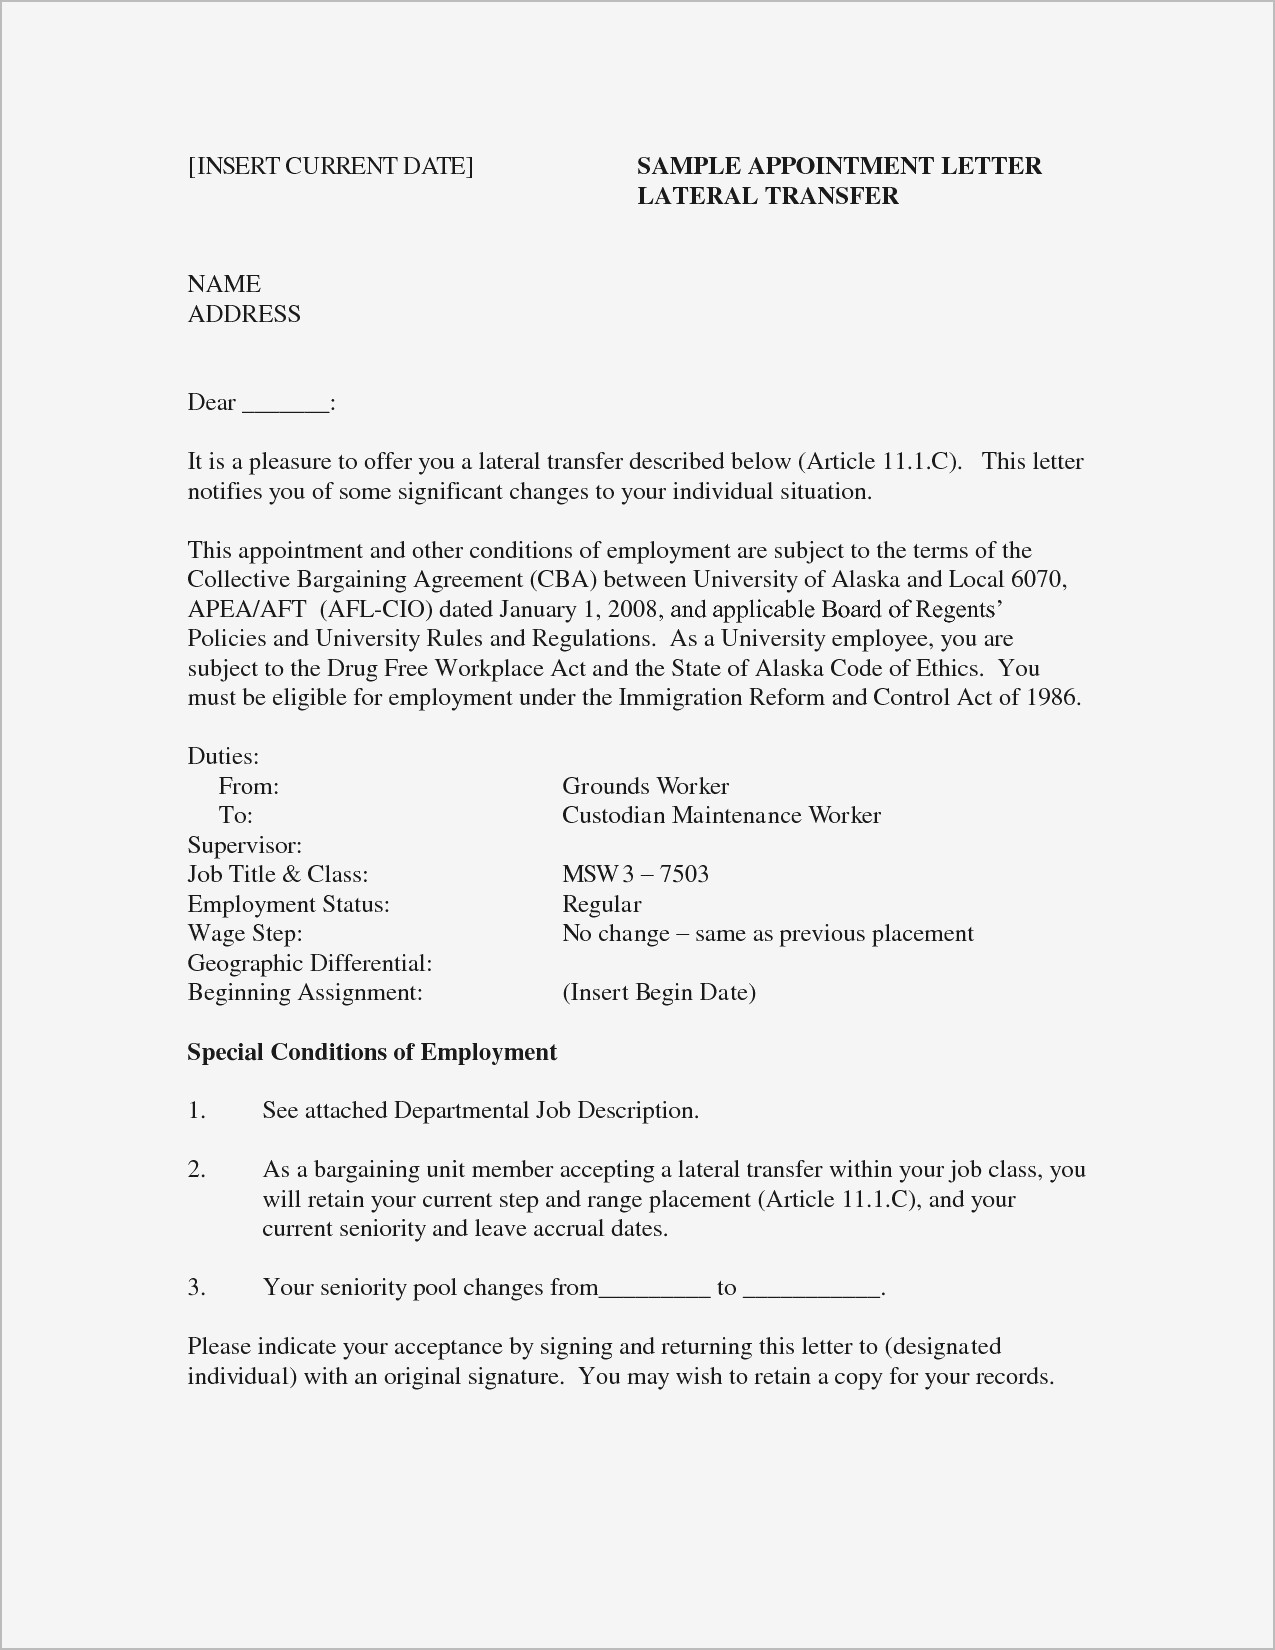 Career Cover Letter Template - Sample Cover Letter for Job Fer Refrence Job Fer Letter Template